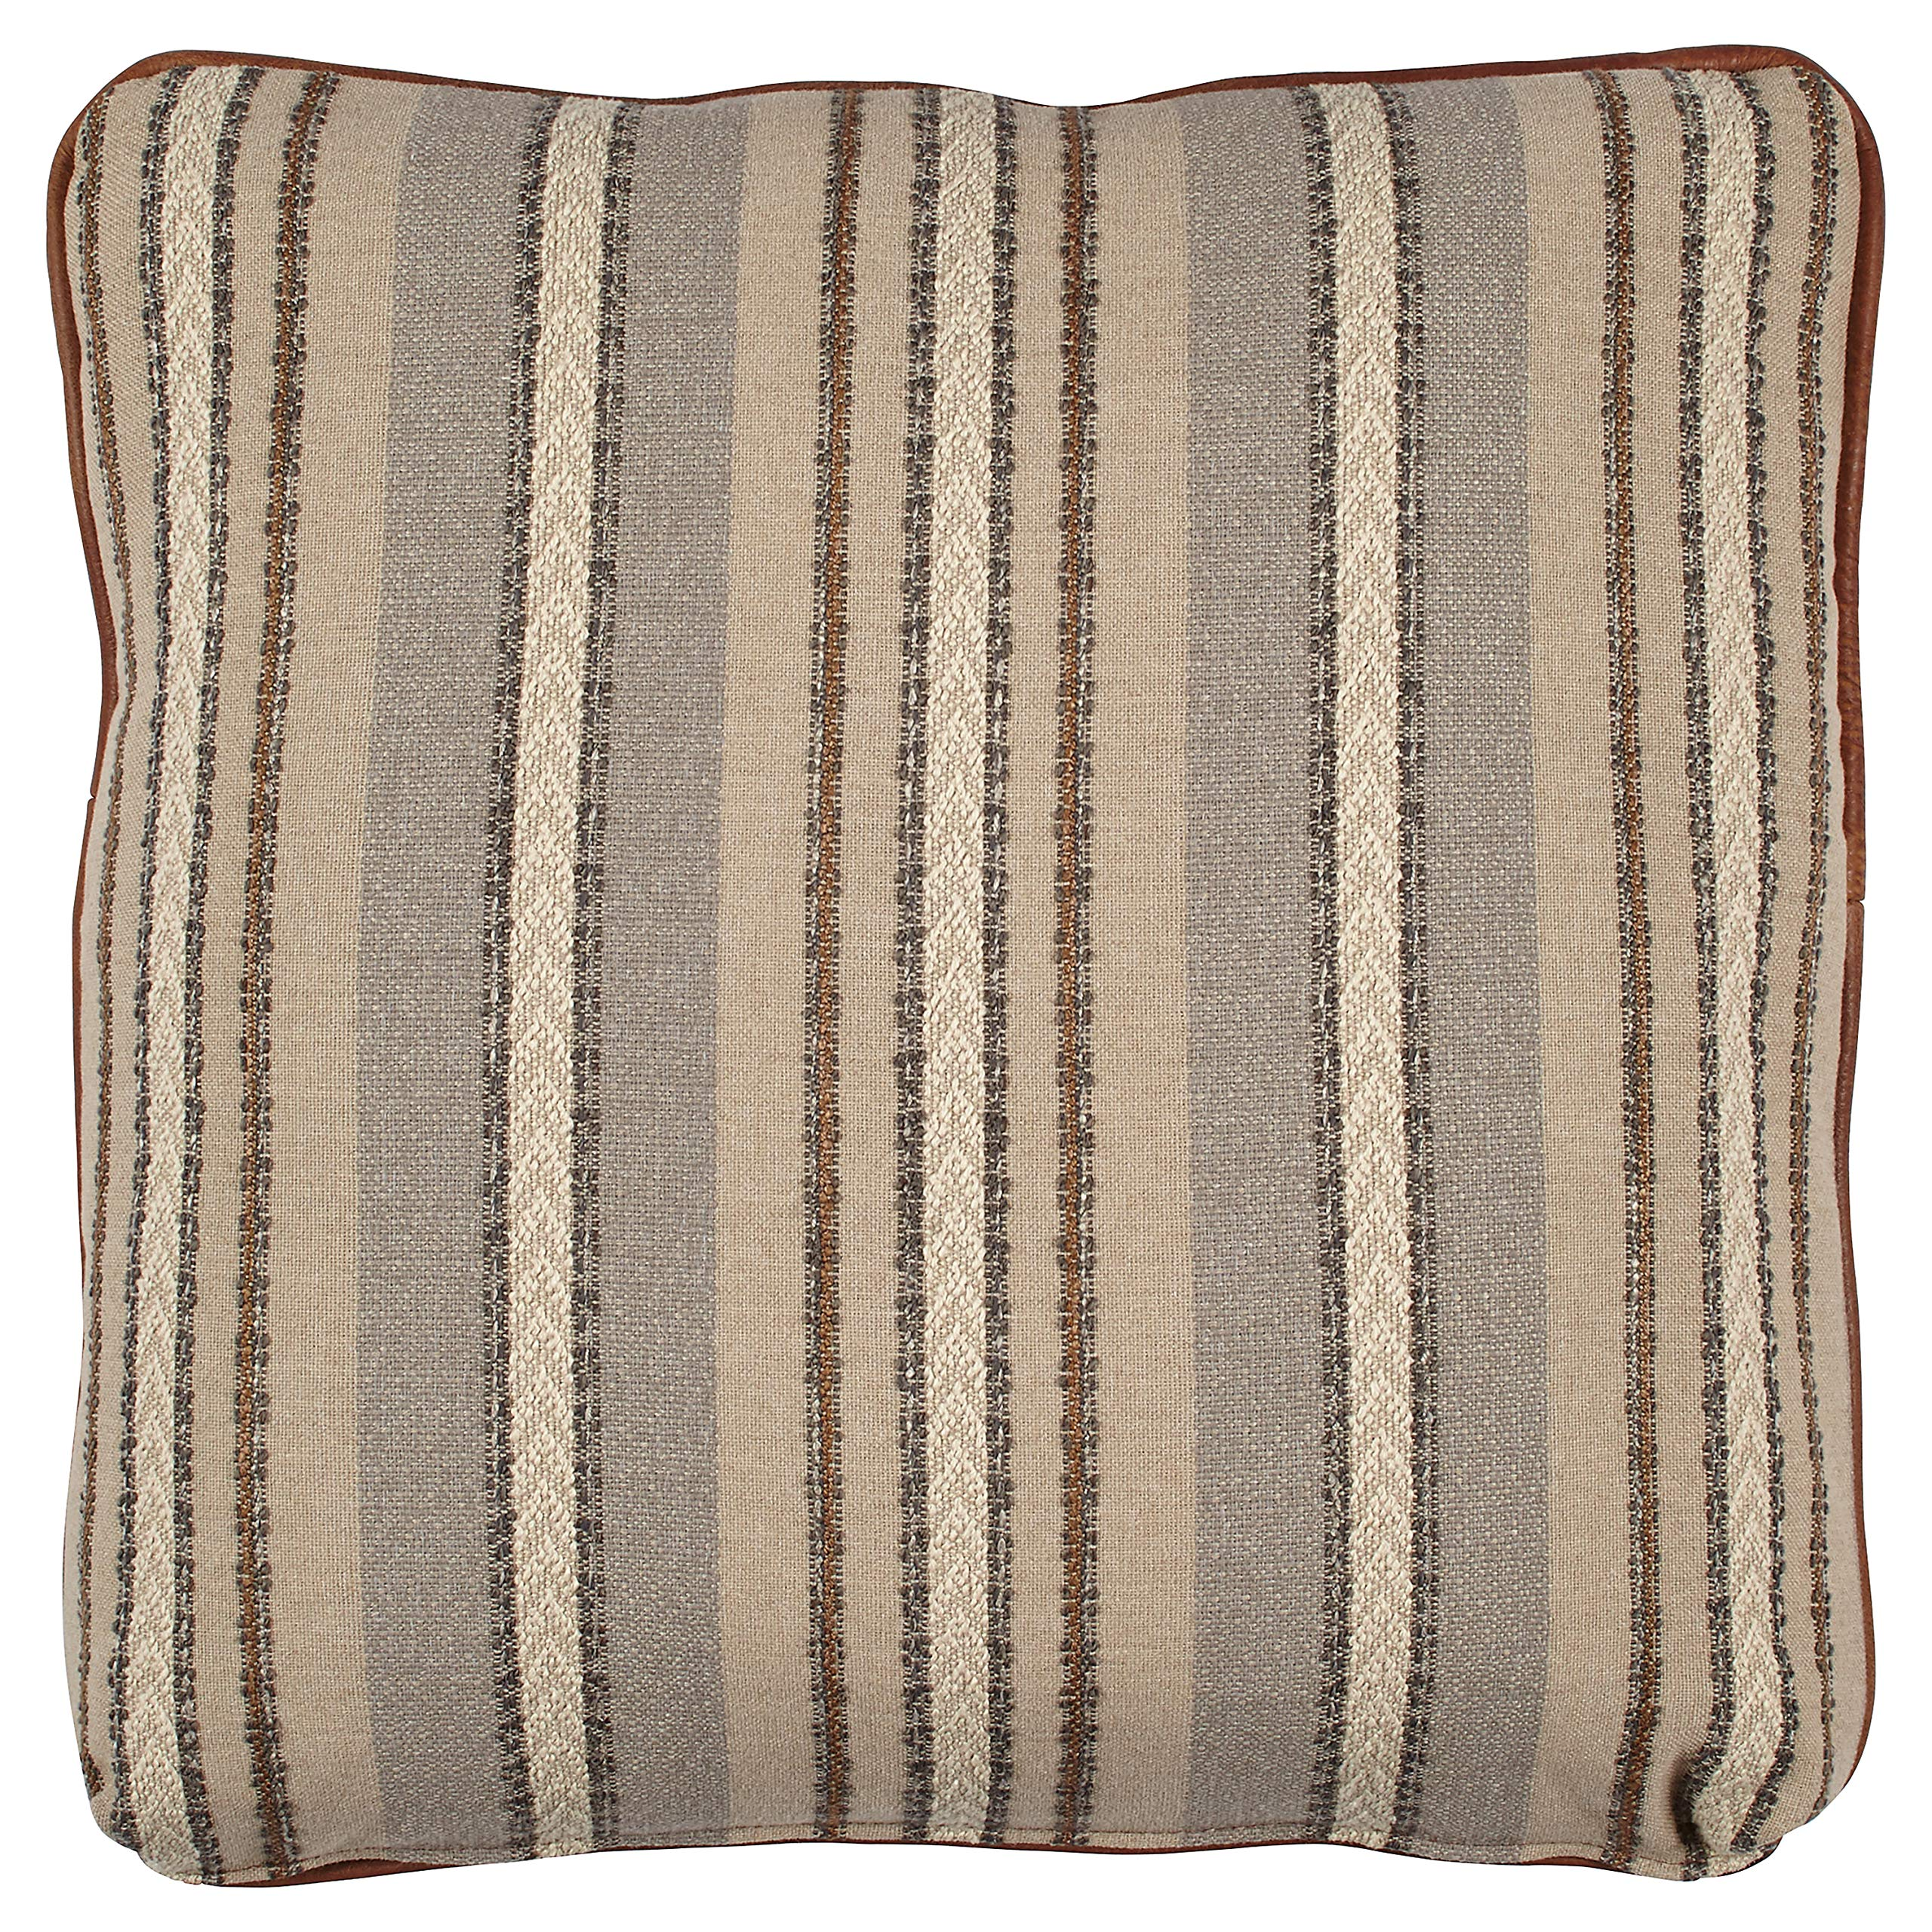 Stone & Beam Leather and Rustic Stripe Reversible Pillow, 19'' x 19'', Brown and Blue